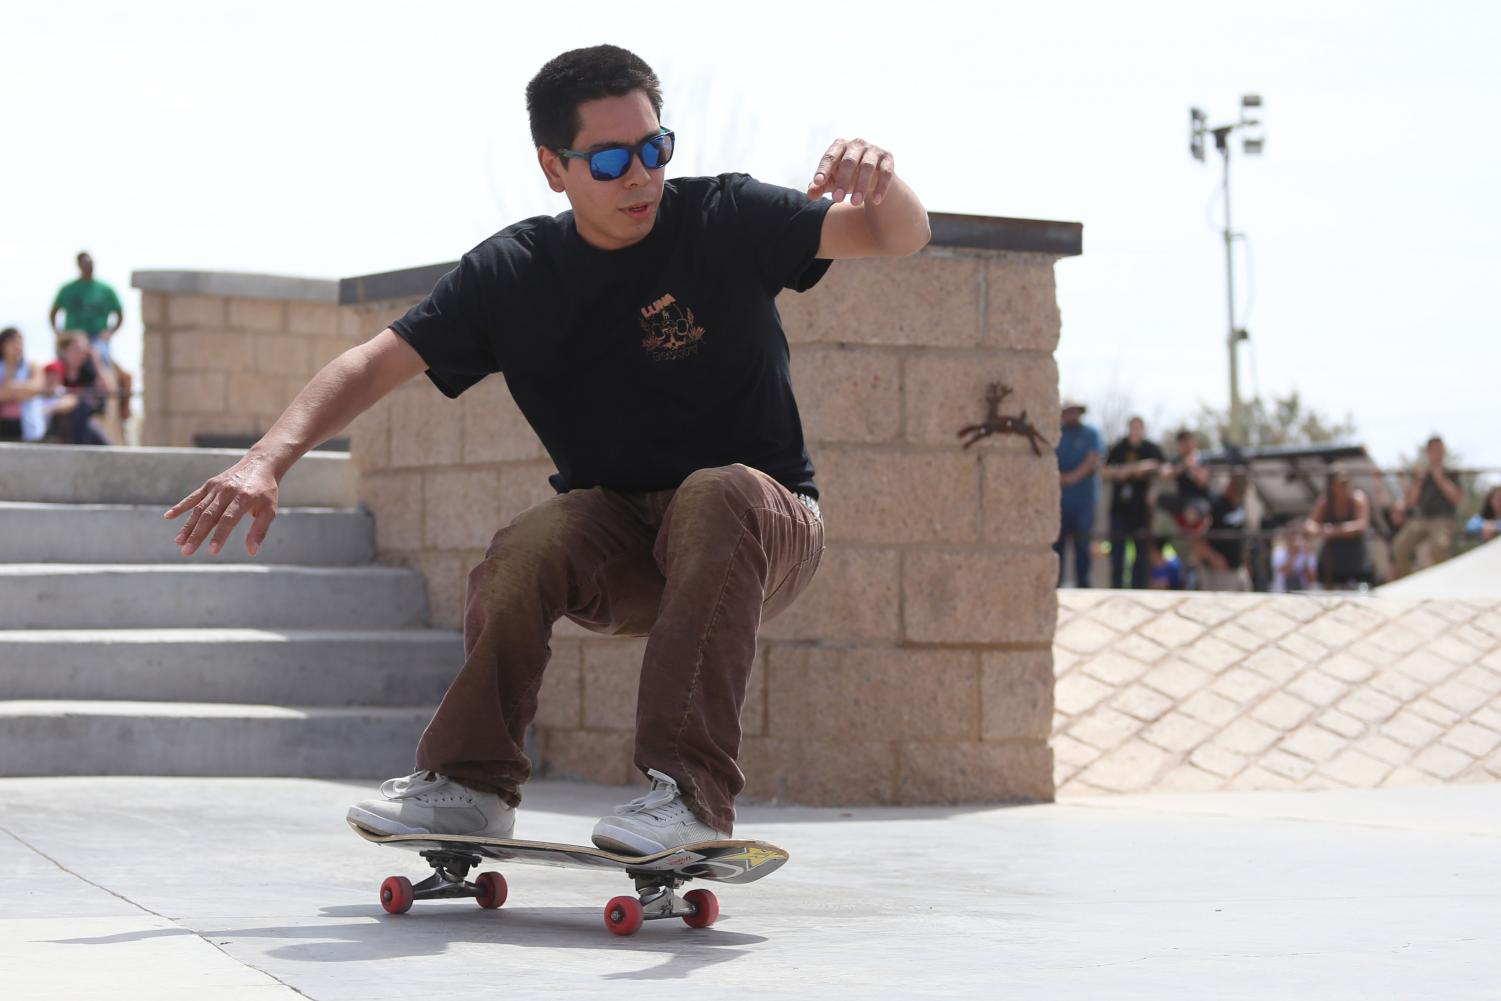 Skater+tries+to+keep+his+balance+on+his+board+after+doing+a+trick+at+the+Pakitu+Skate+Plaza+on+Saturday%2C+March+24.+